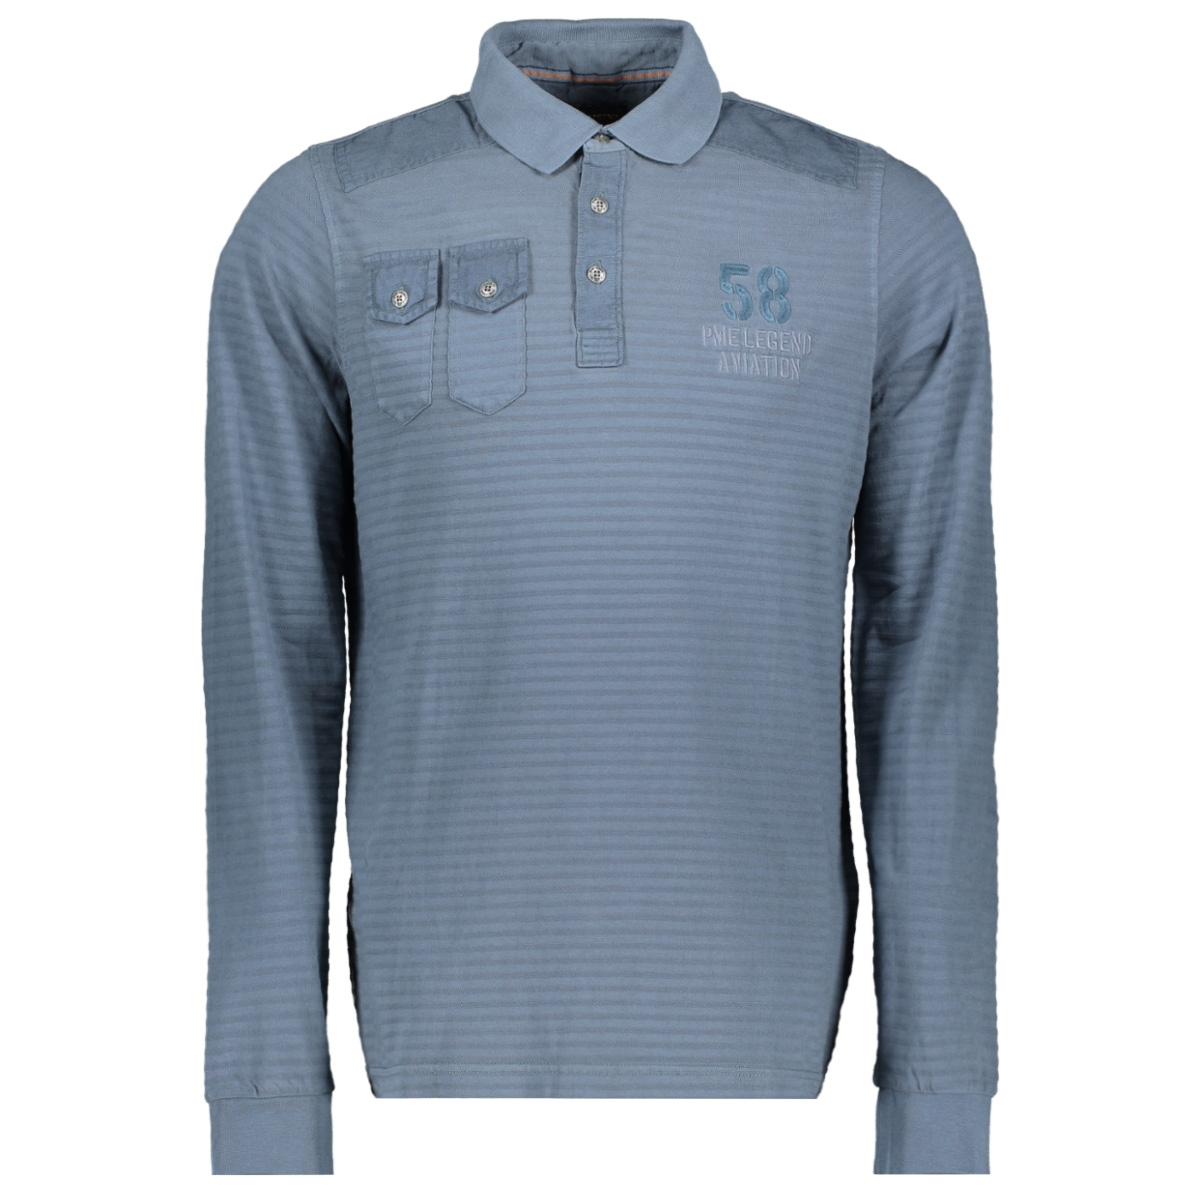 long sleeve polo pps196874 pme legend polo 5126